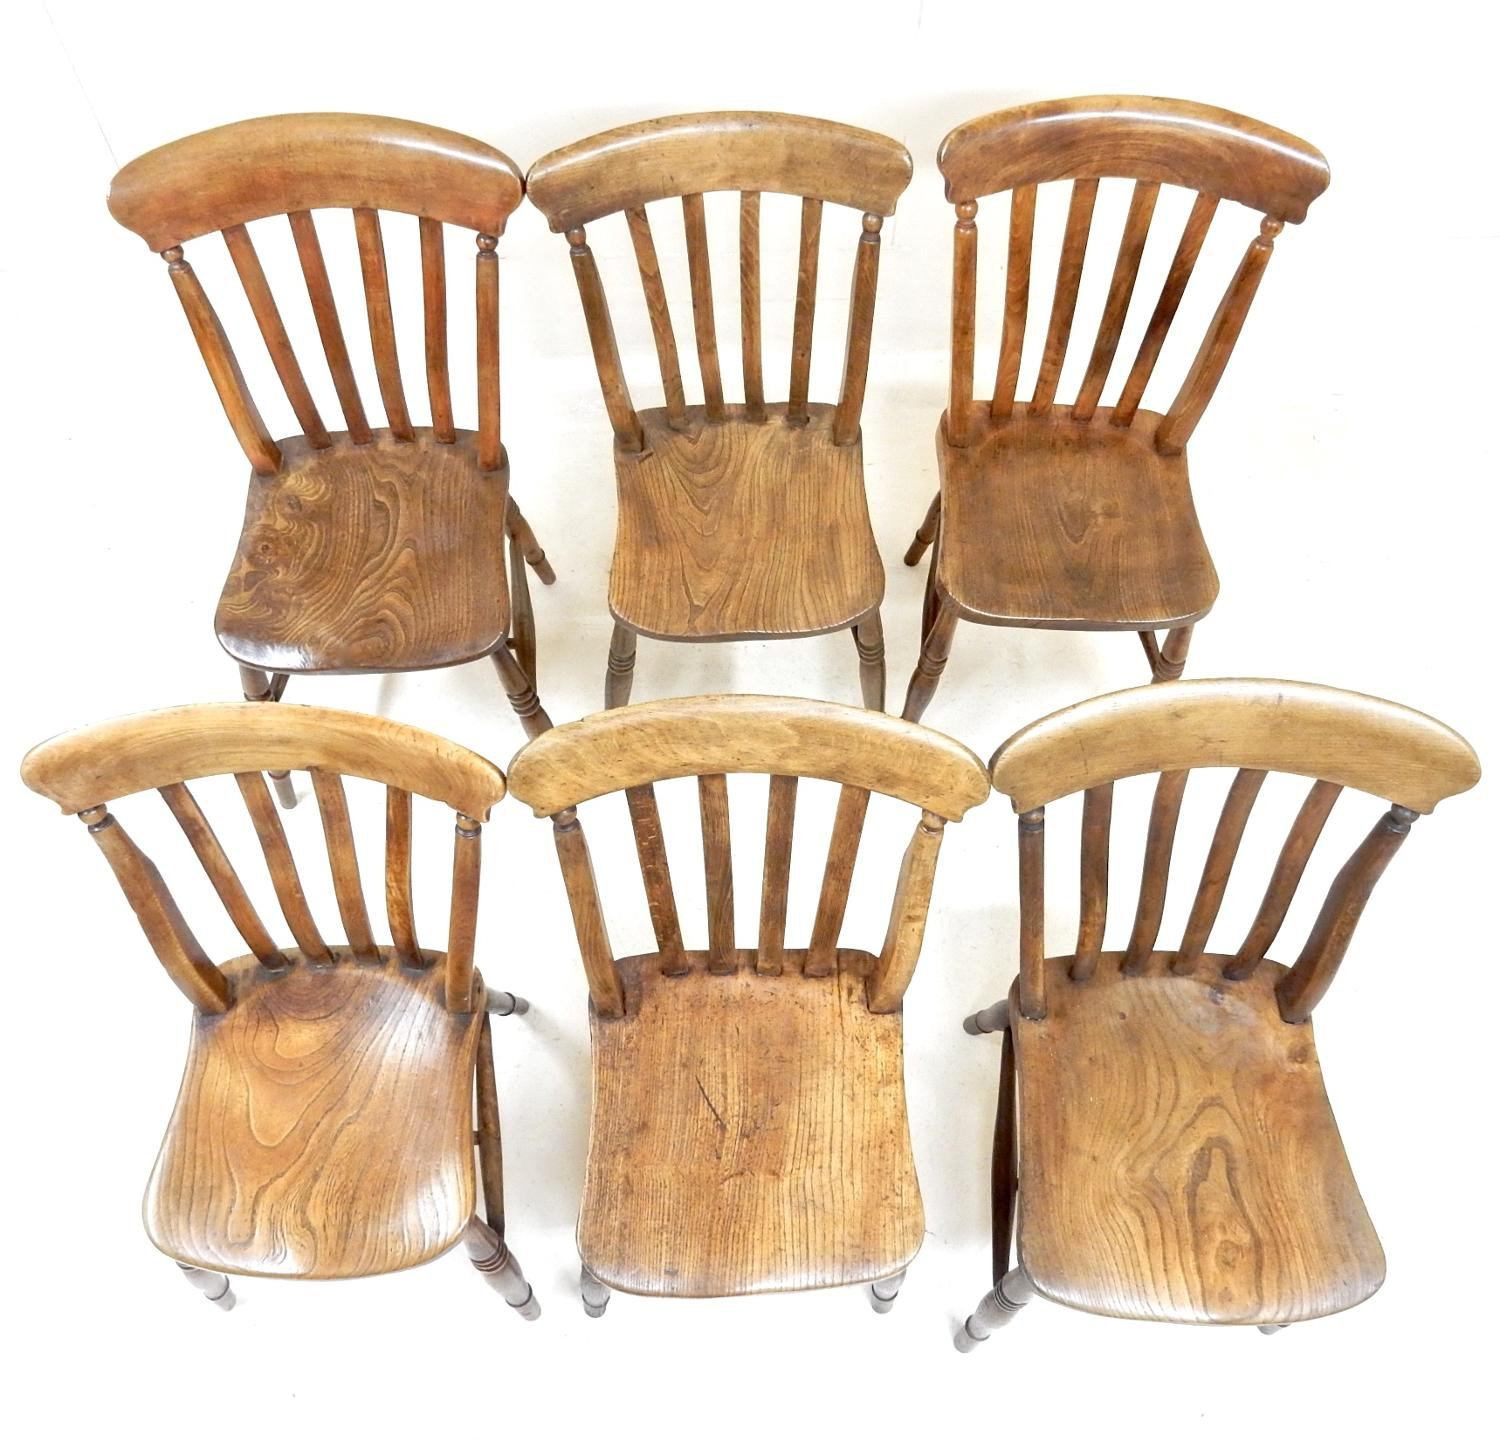 Windsor Kitchen Chairs: C19th Windsor Kitchen Chairs In Tables And Chairs